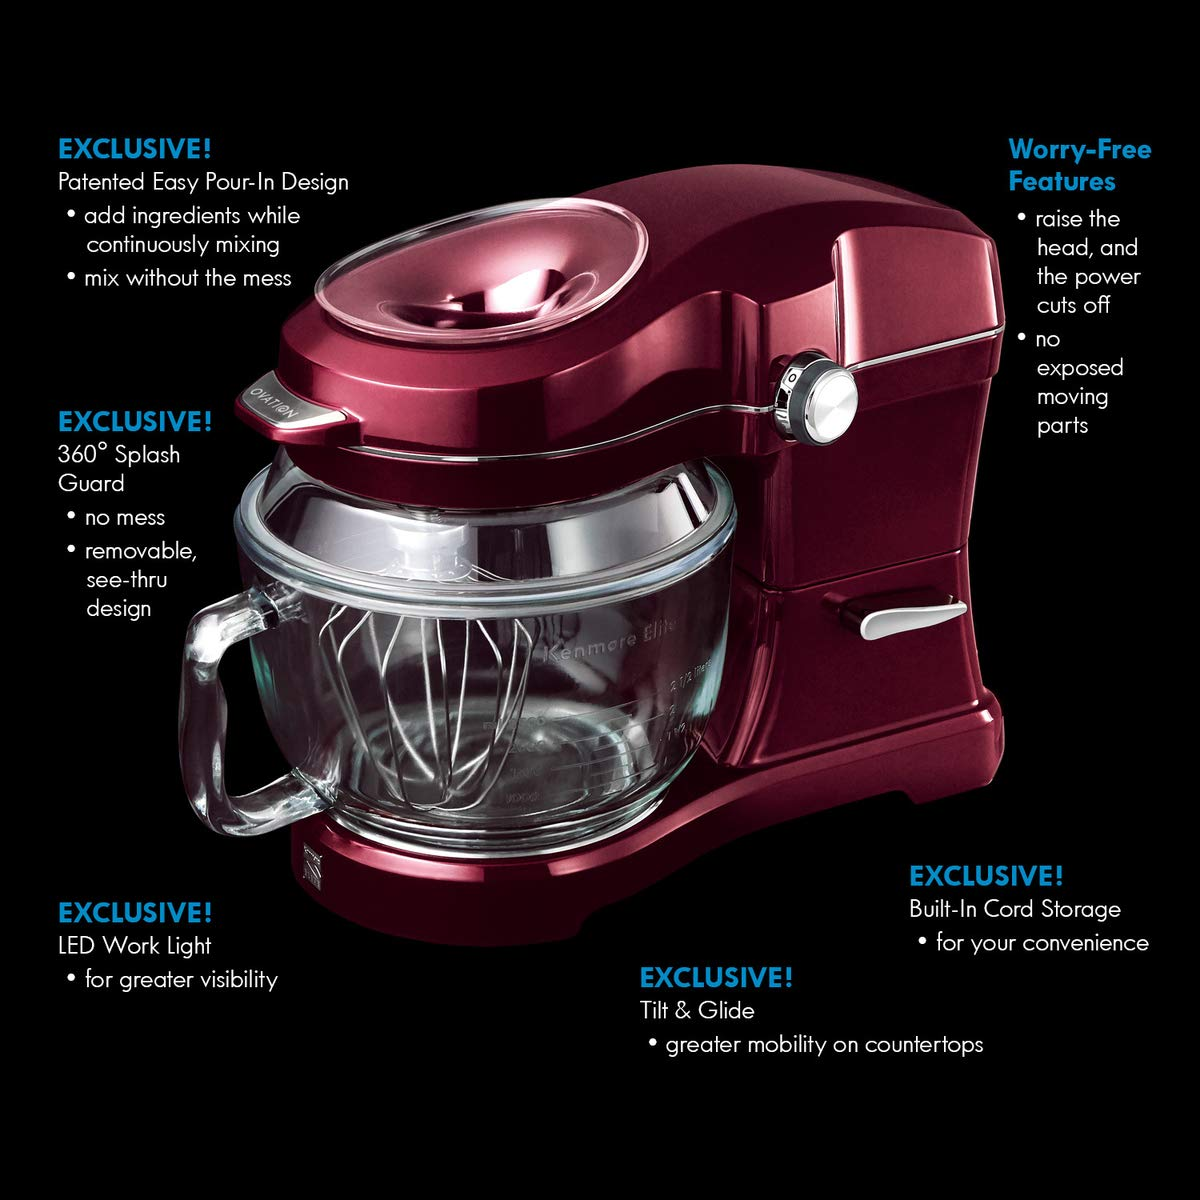 Kenmore Elite Ovation 49083 Exclusive Pour-In Top, 5-Qt. Tilt-Head Kitchen Stand Mixer, Red Burgundy by Kenmore (Image #3)